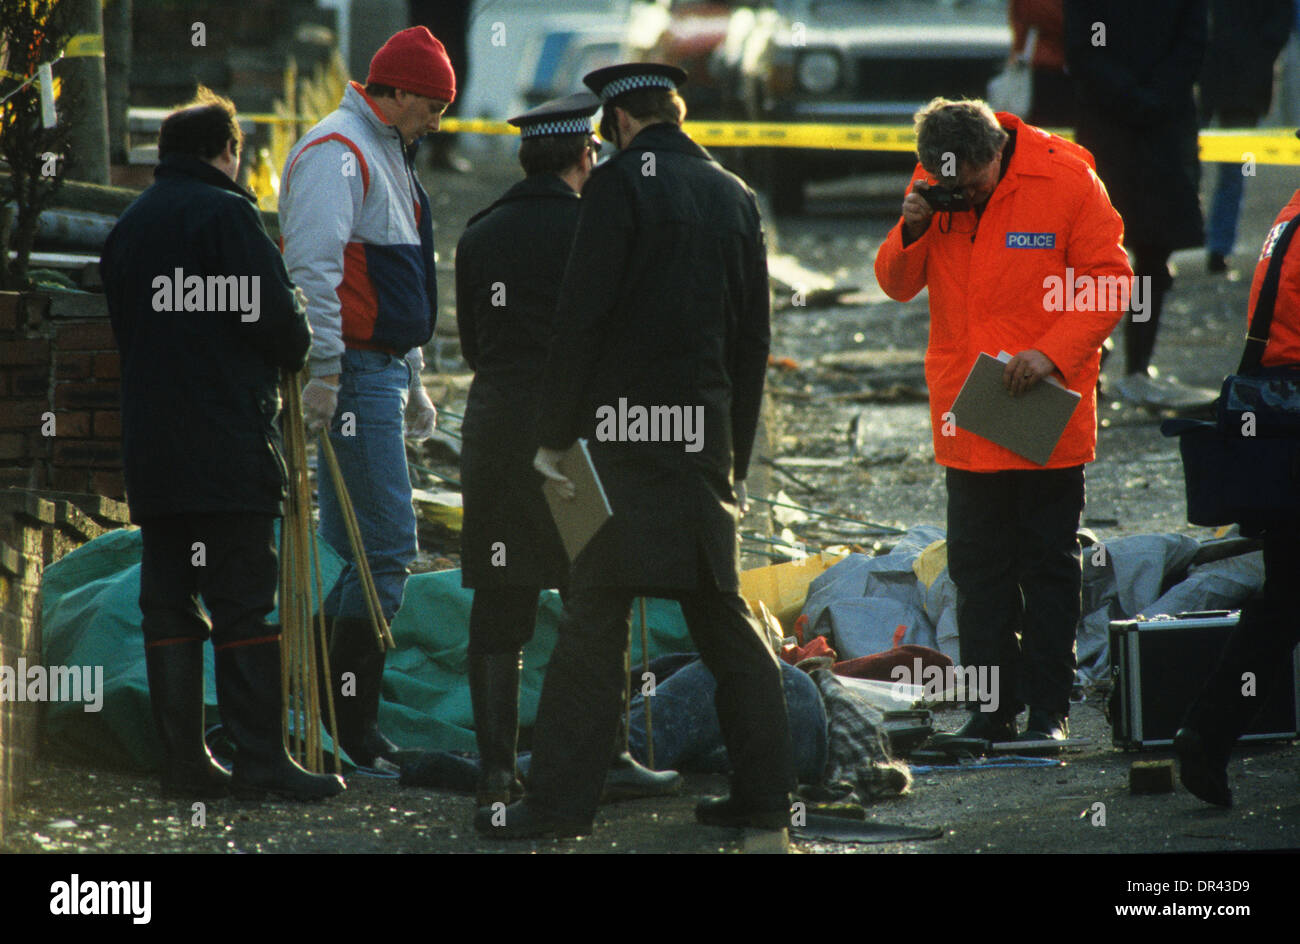 Lockerbie plane crash Pan Am Flight 103 police survey wreckage and photograph one of the victims of the terrorist attack 22/12/8 - Stock Image